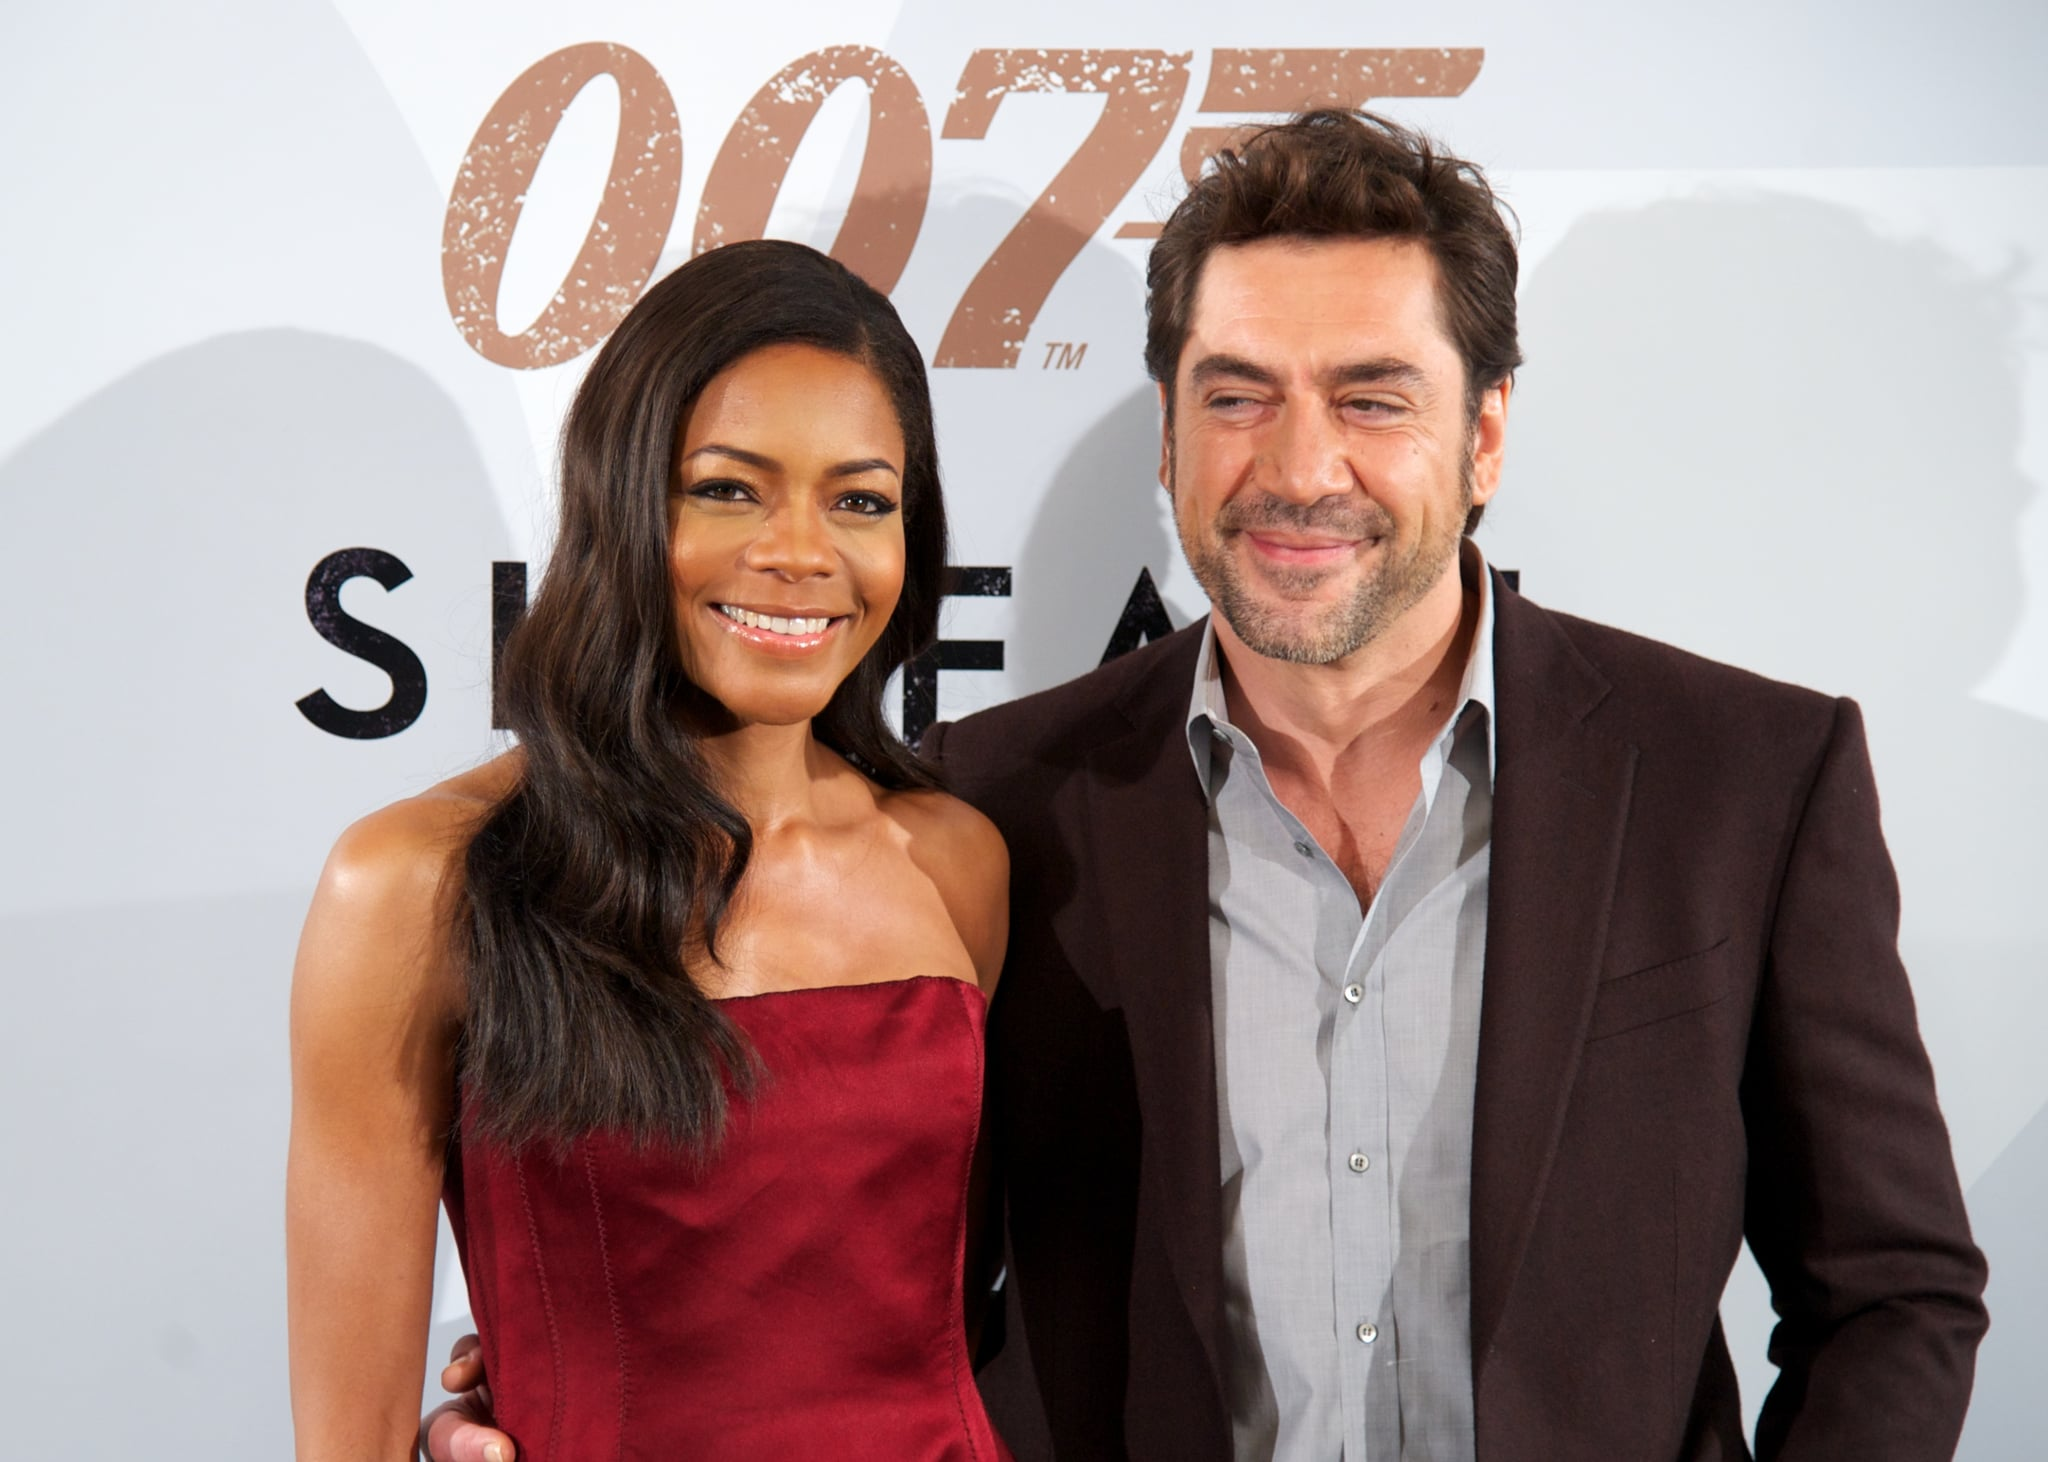 Javier Bardem Brings Skyfall Home to Spain